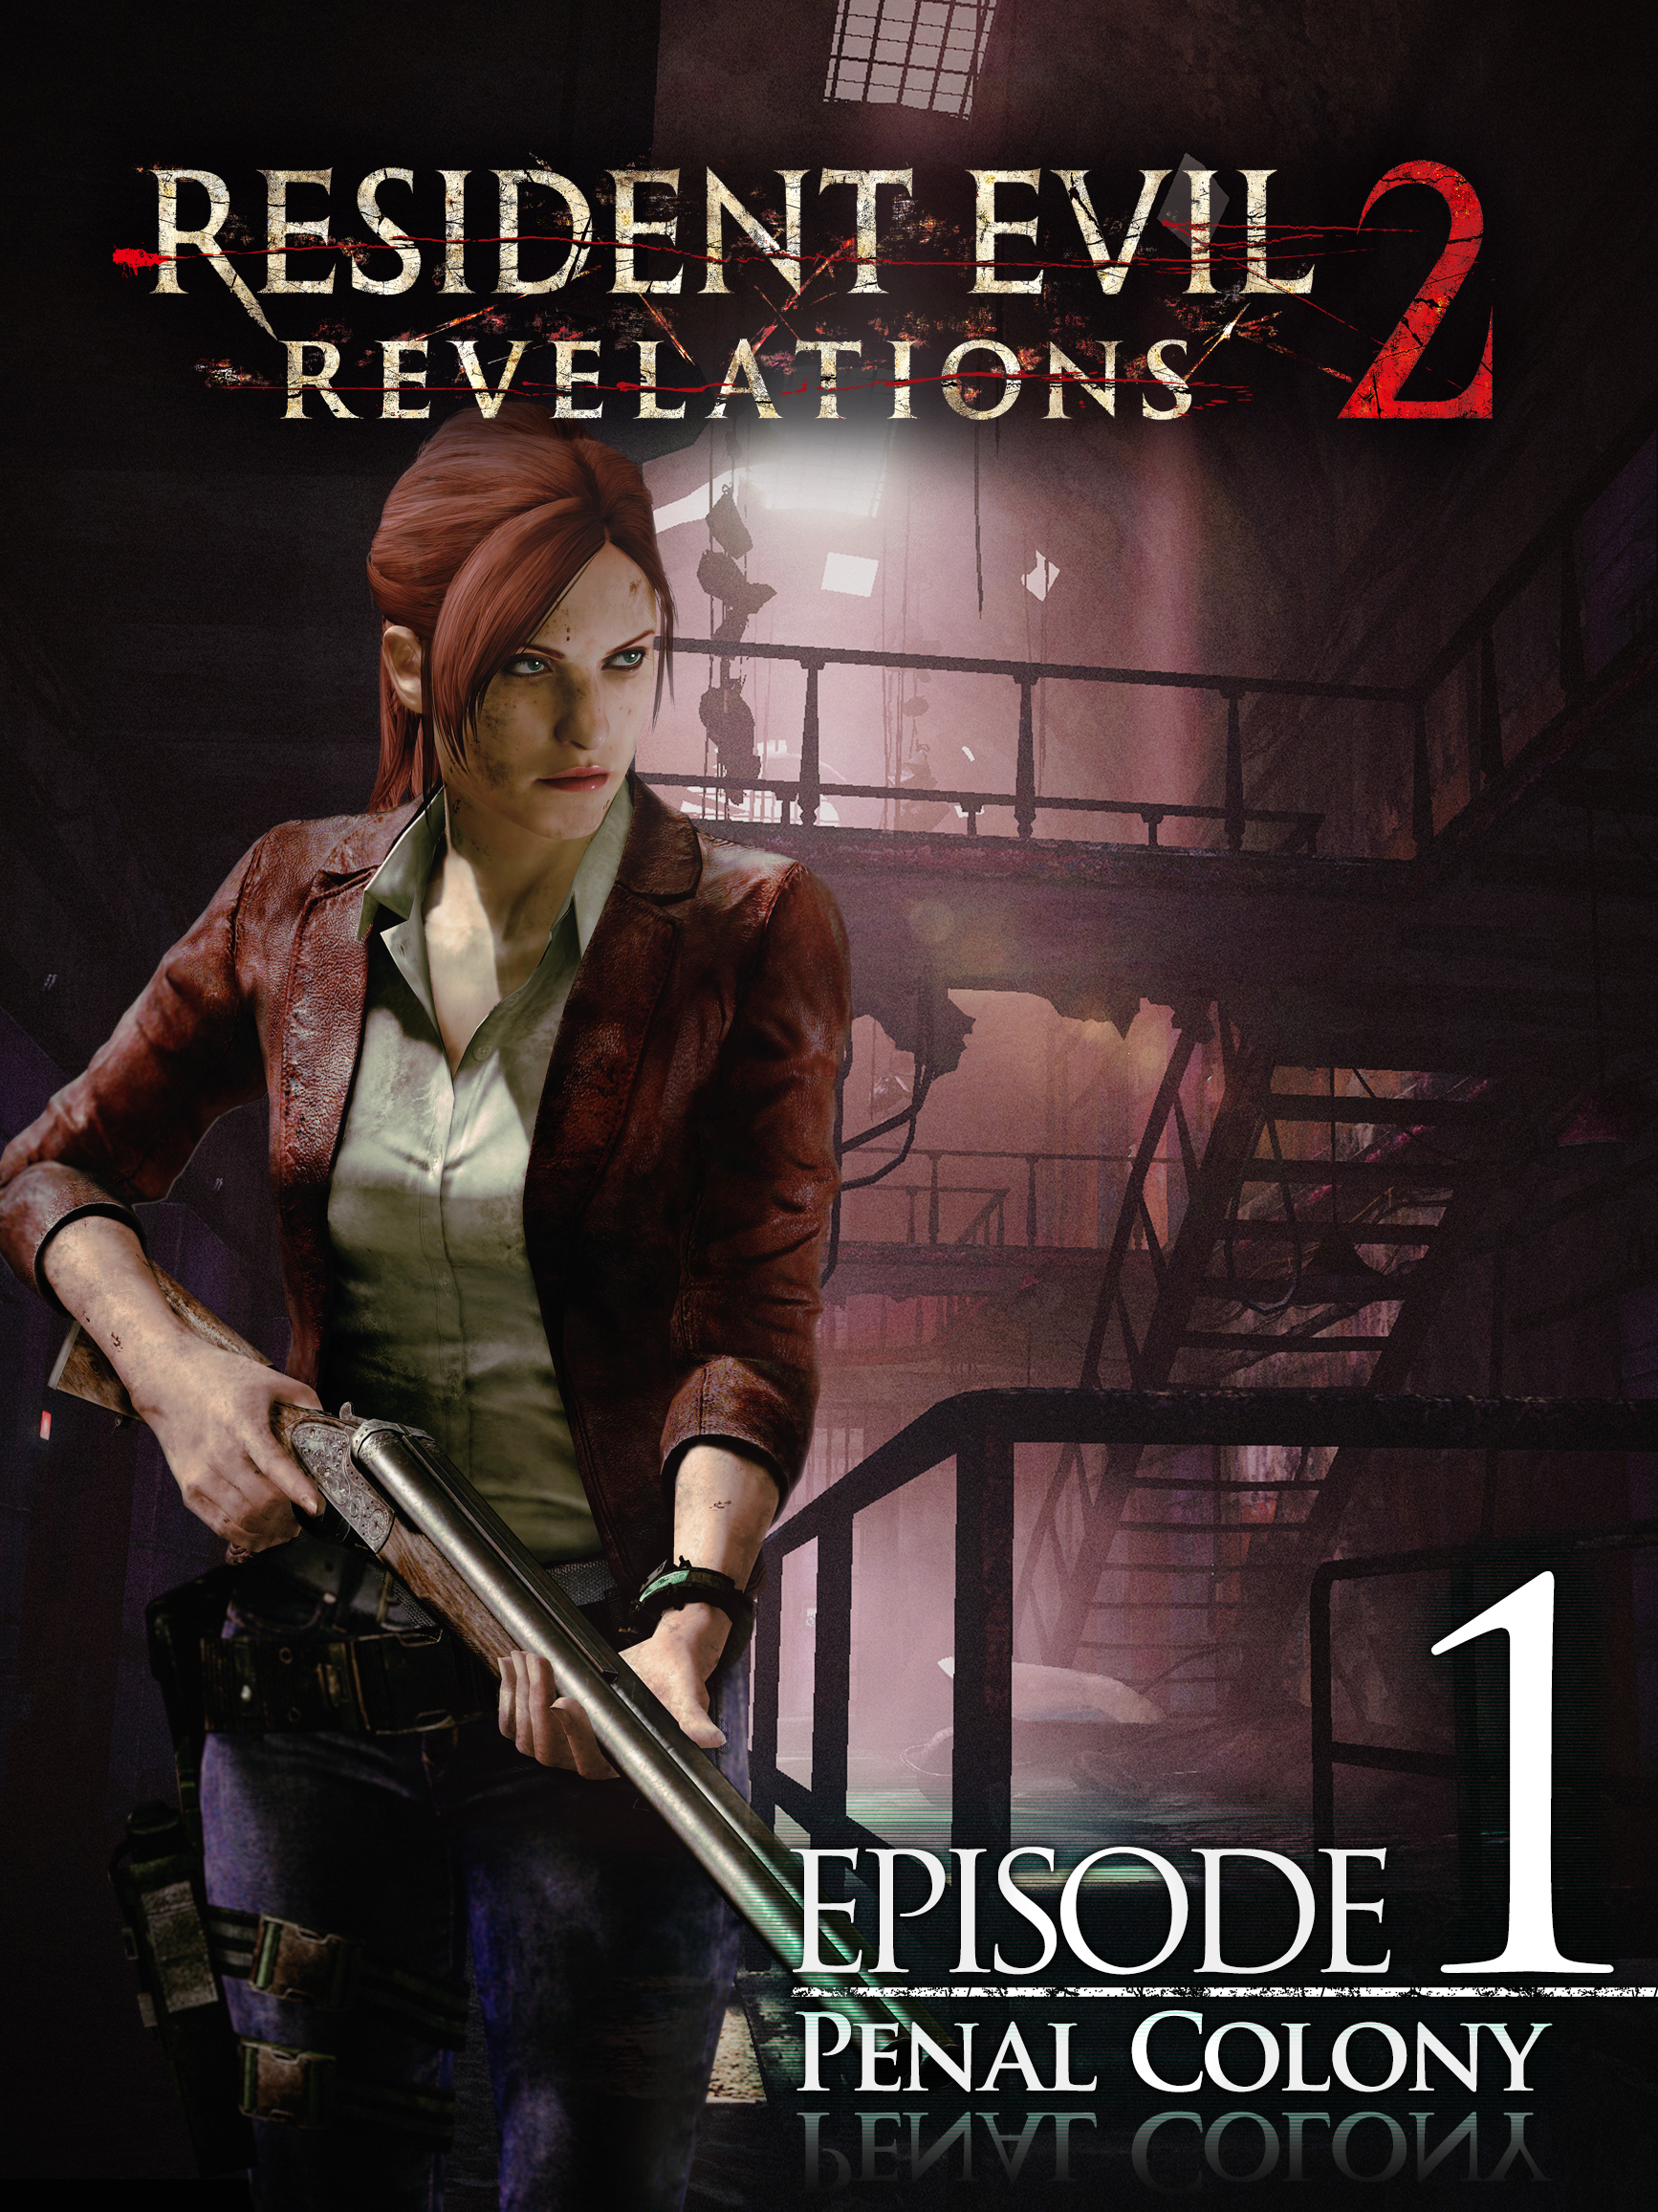 File:Revelations 2 - Episode 1 poster.jpg